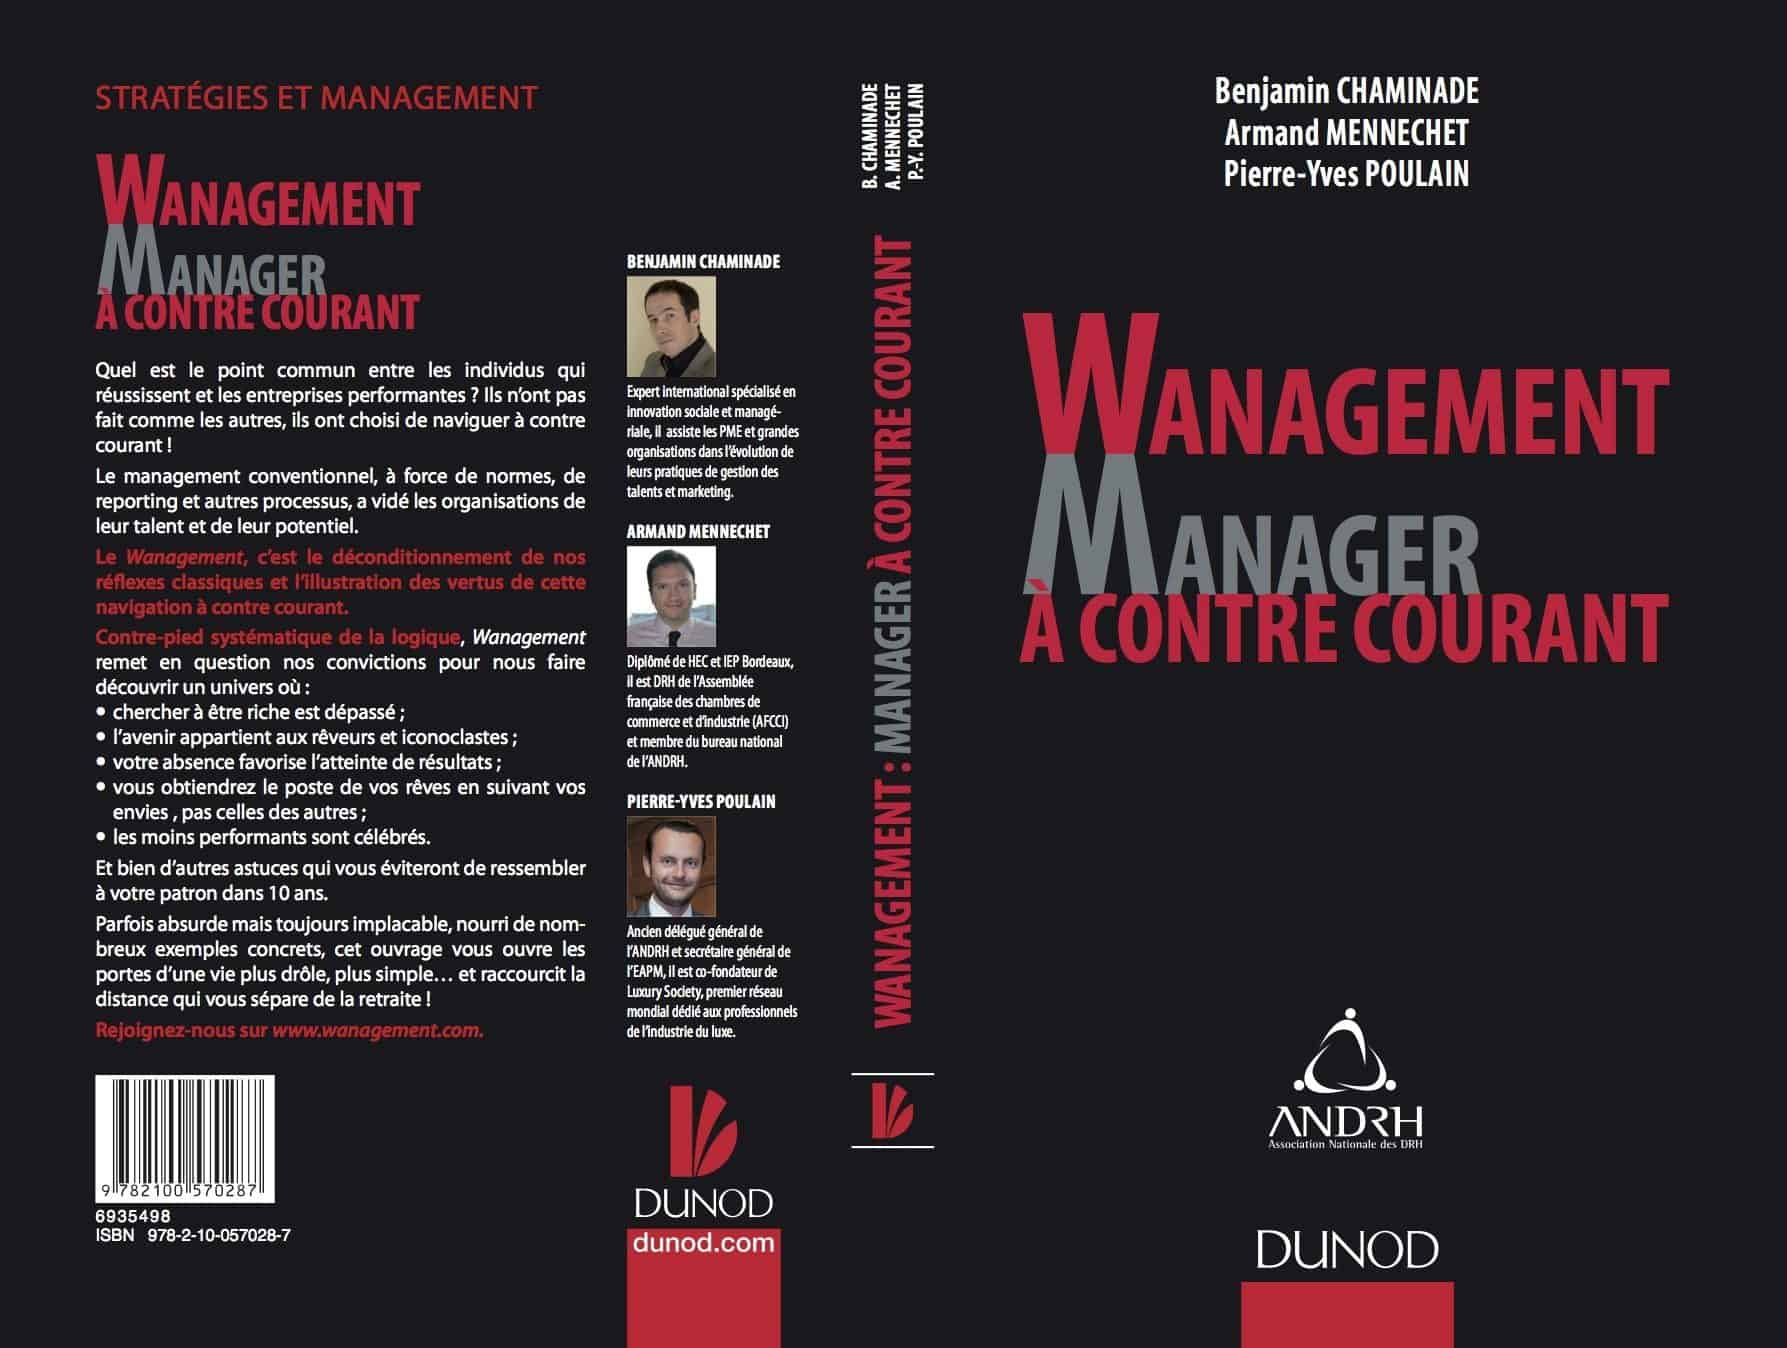 « Wanagement »